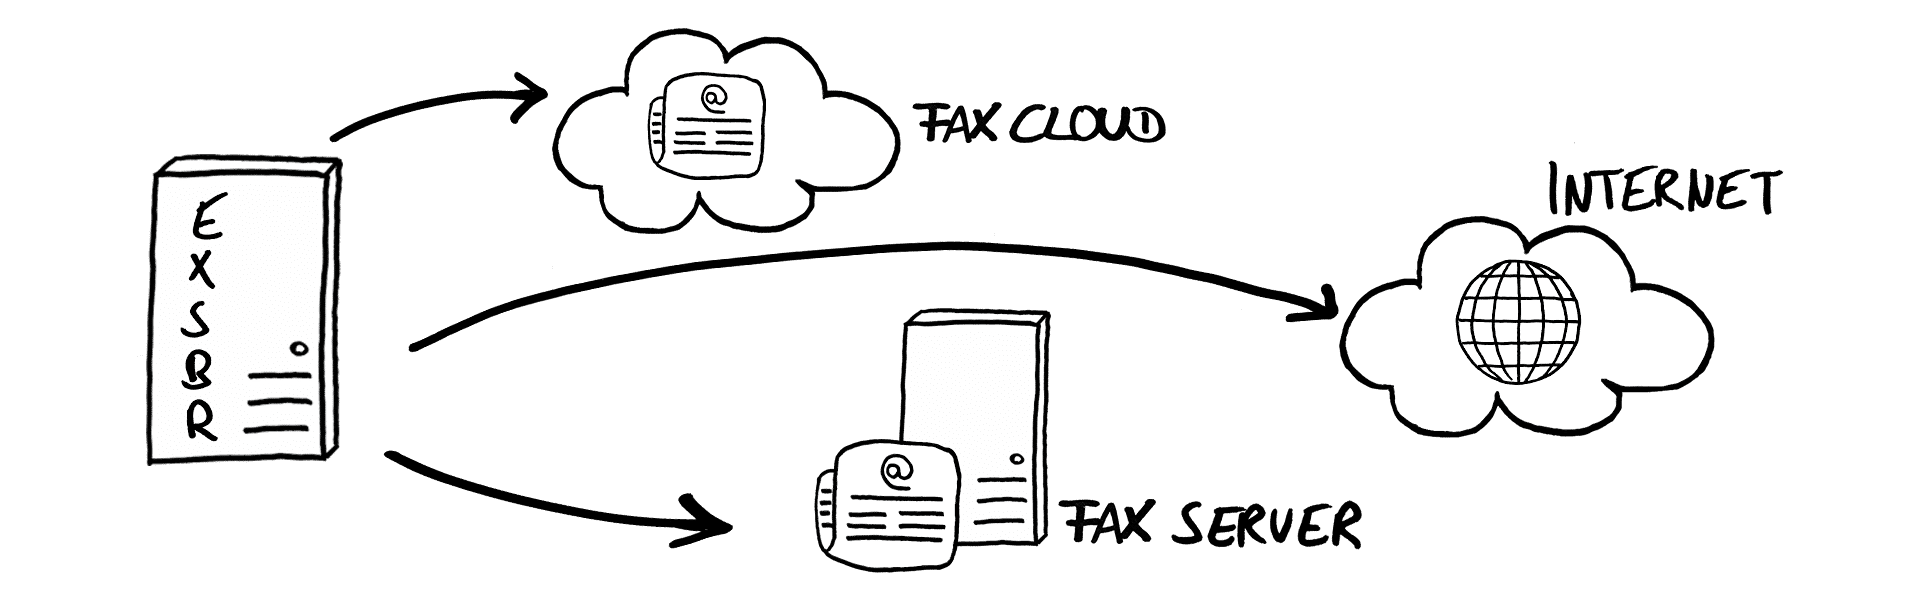 message routing global fax routing